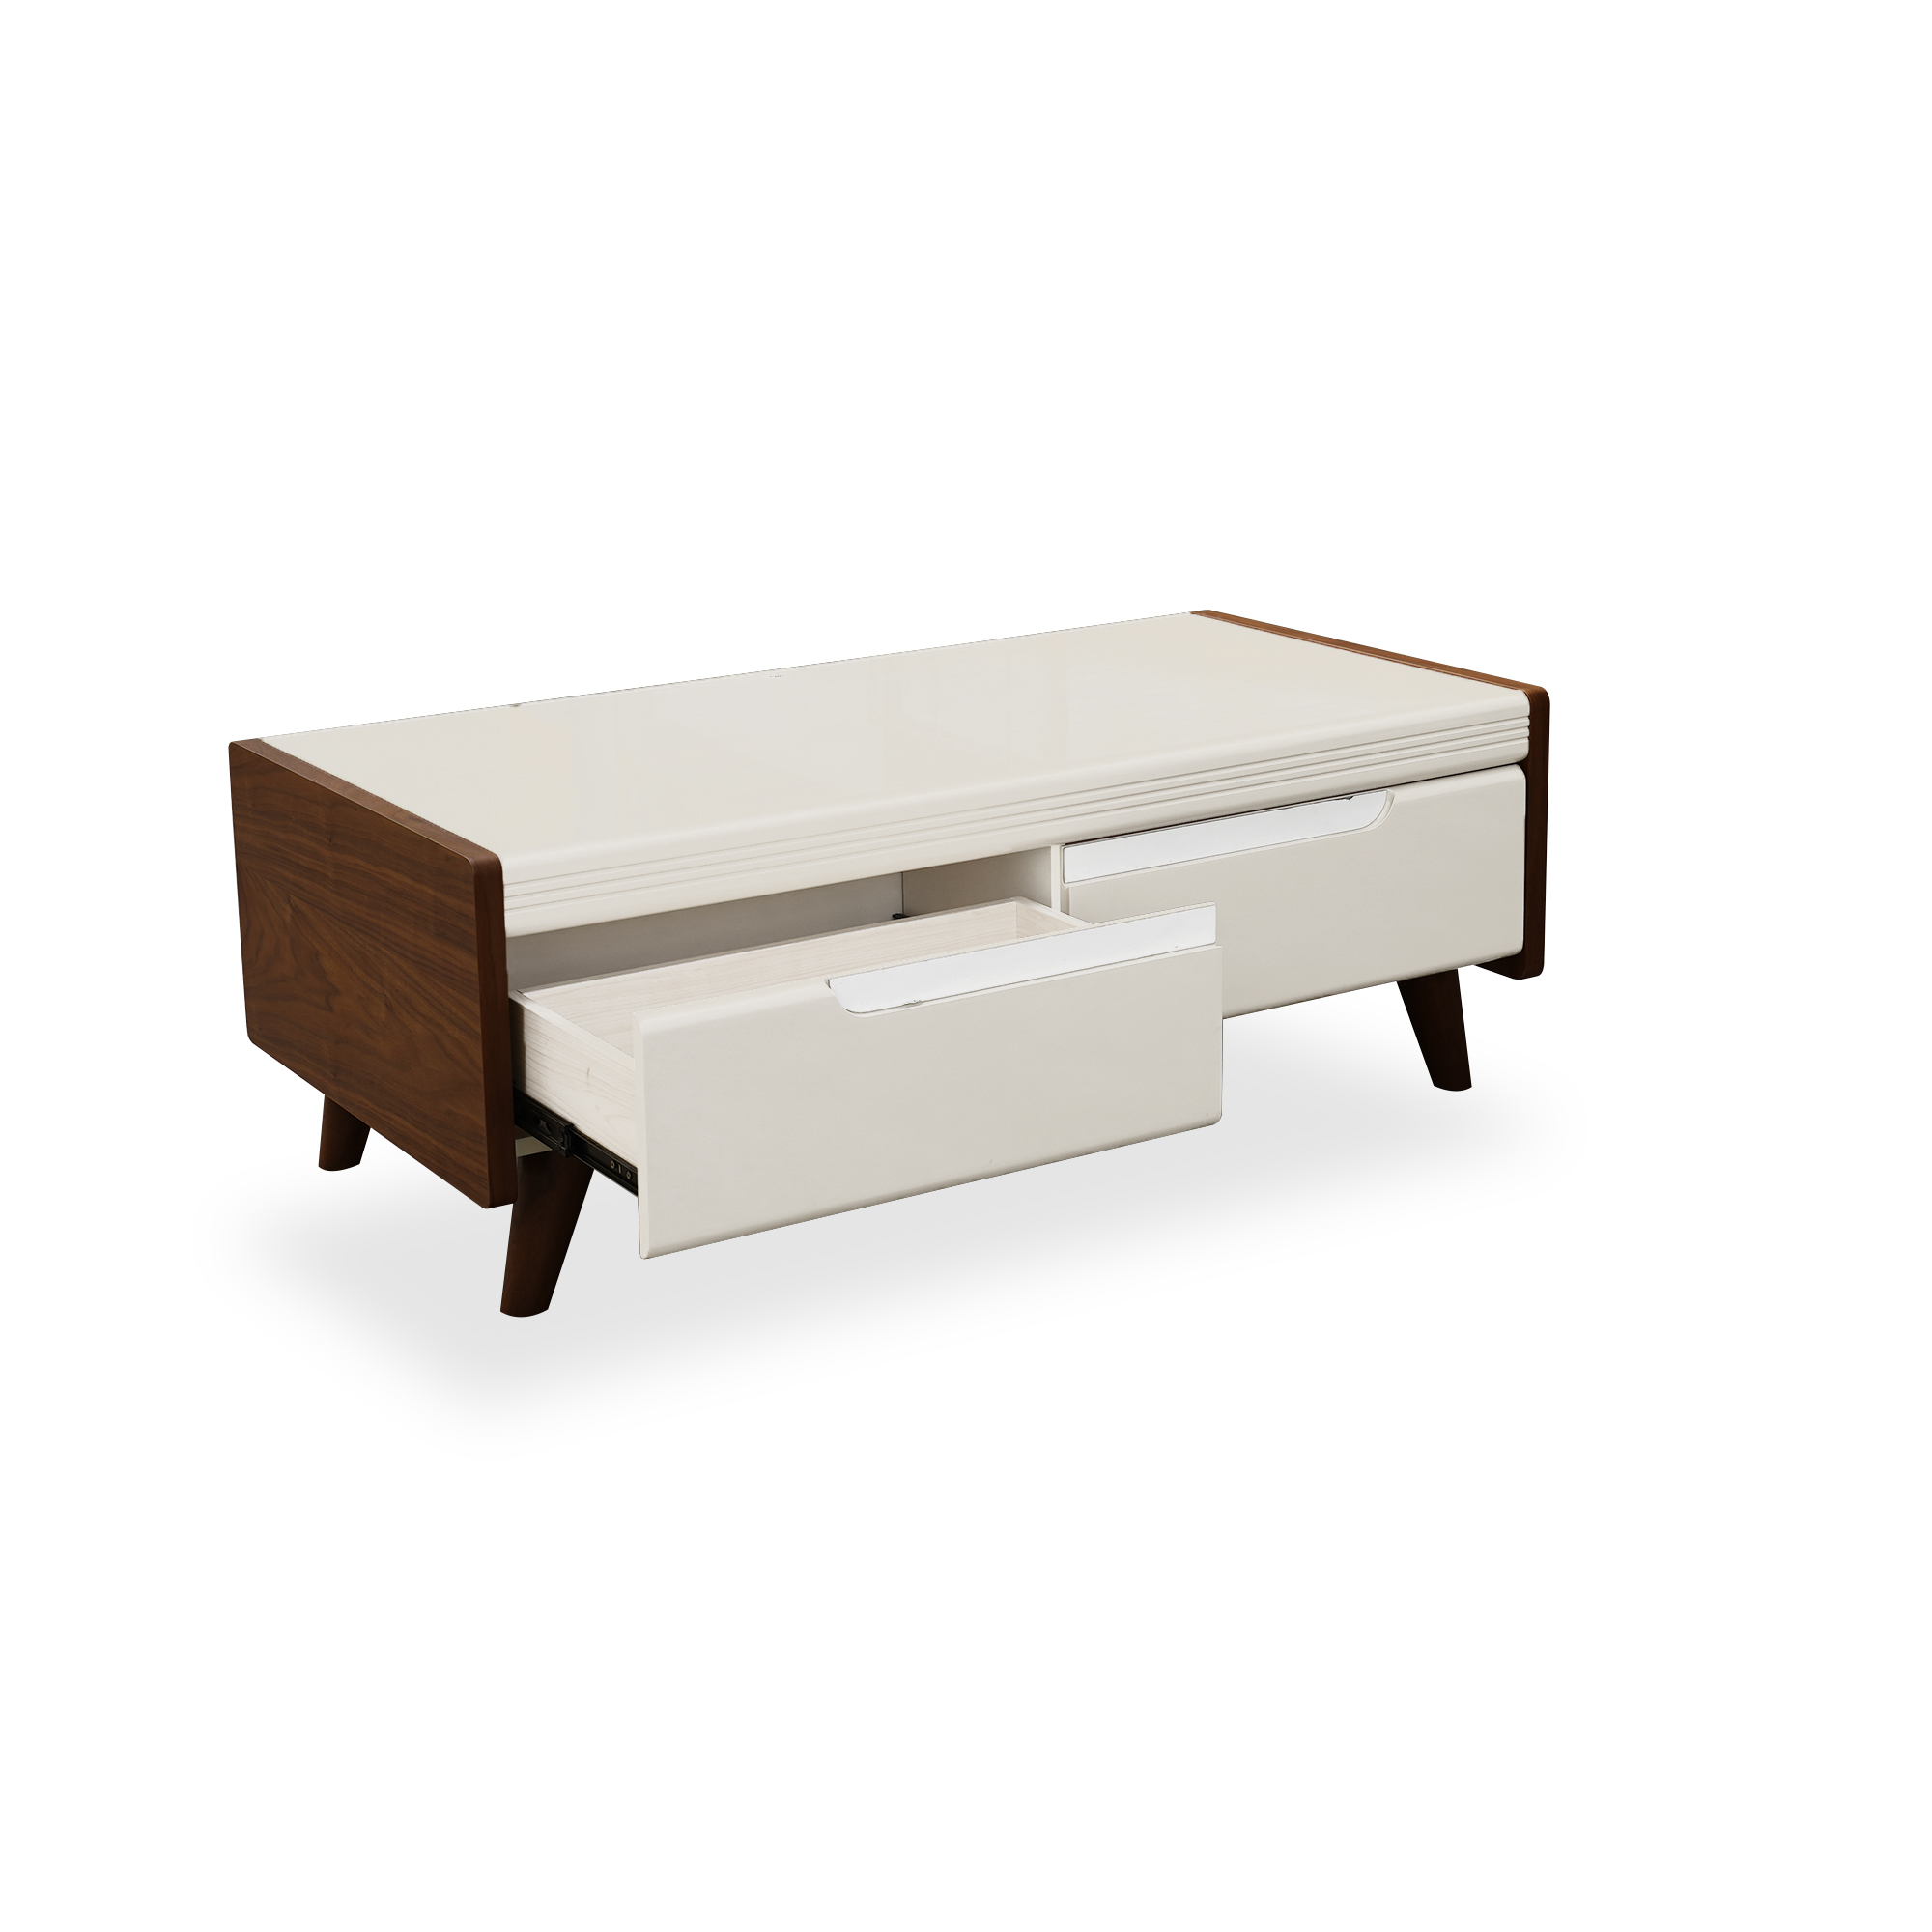 Tempered Glass Top Coffee Table Free Delivery Free Assembly Lazada Singapore [ 2000 x 2000 Pixel ]